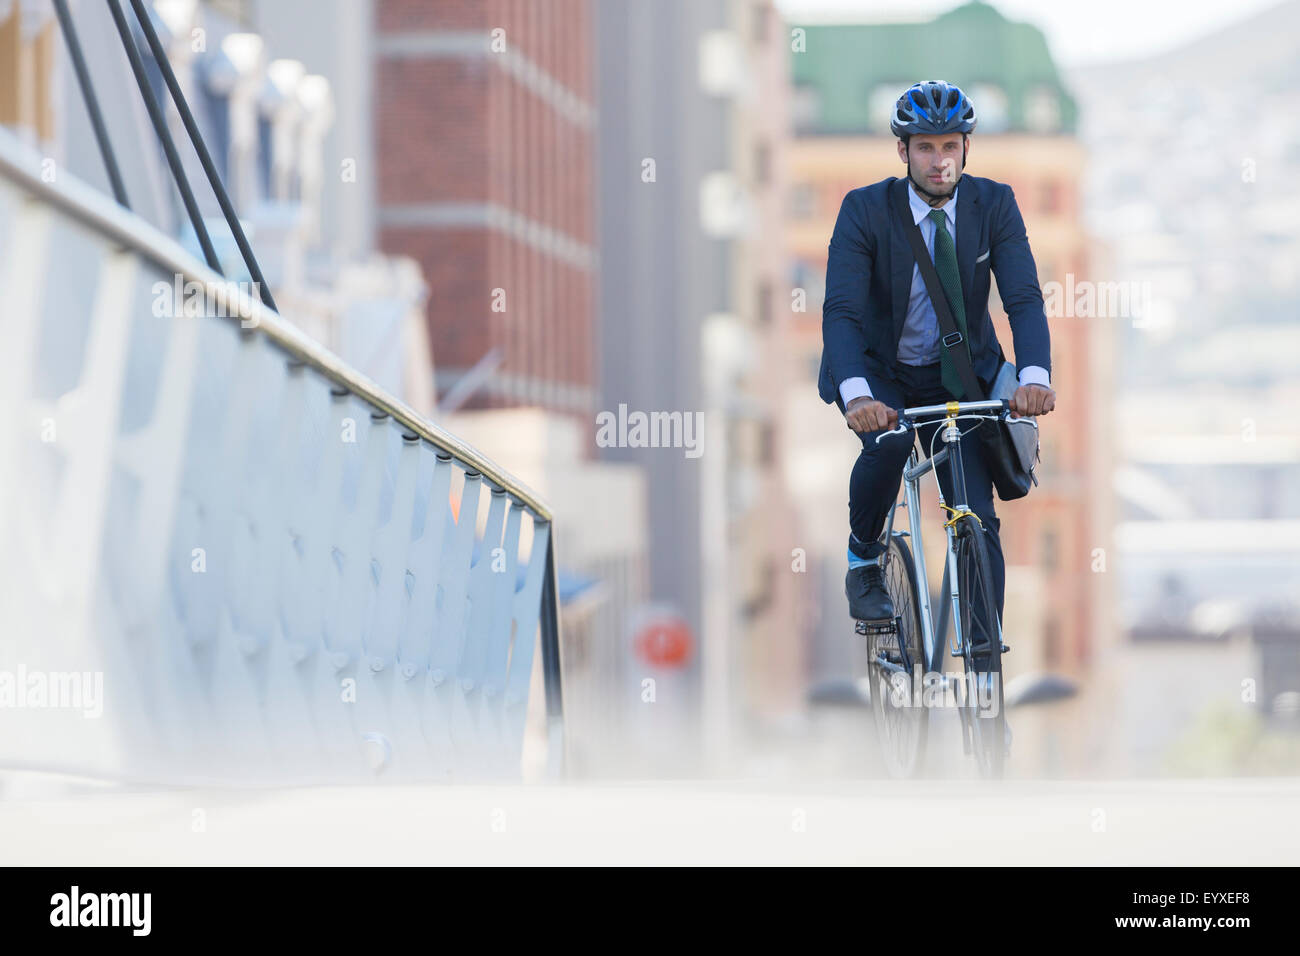 Businessman In Suit And Helmet Riding Bicycle In City Stock Photo Alamy